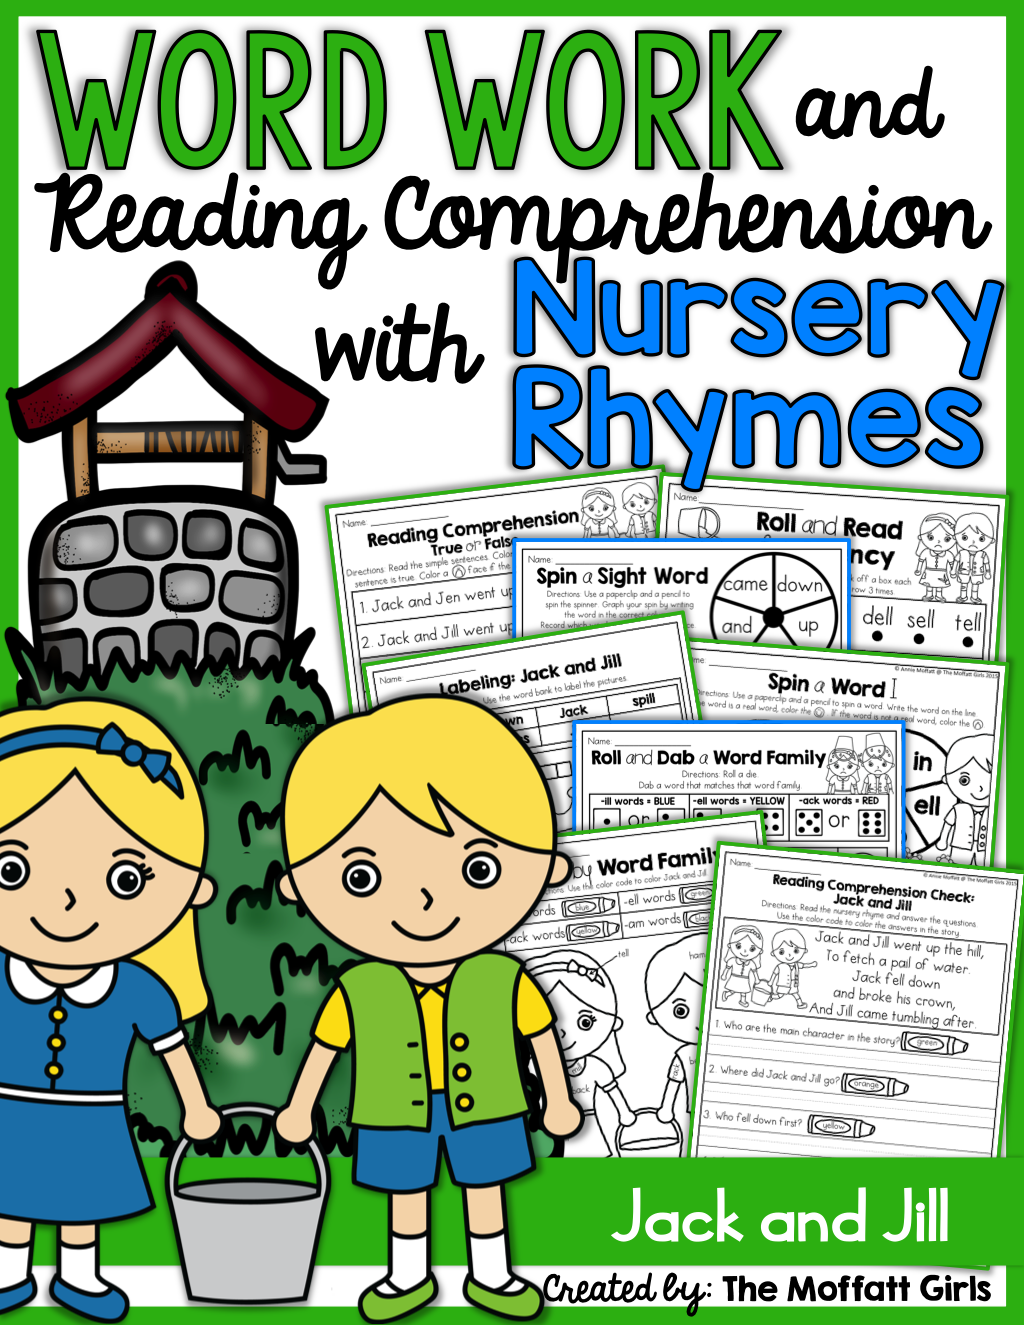 Teaching Word Work And Reading Comprehension Through Nursery Rhymes